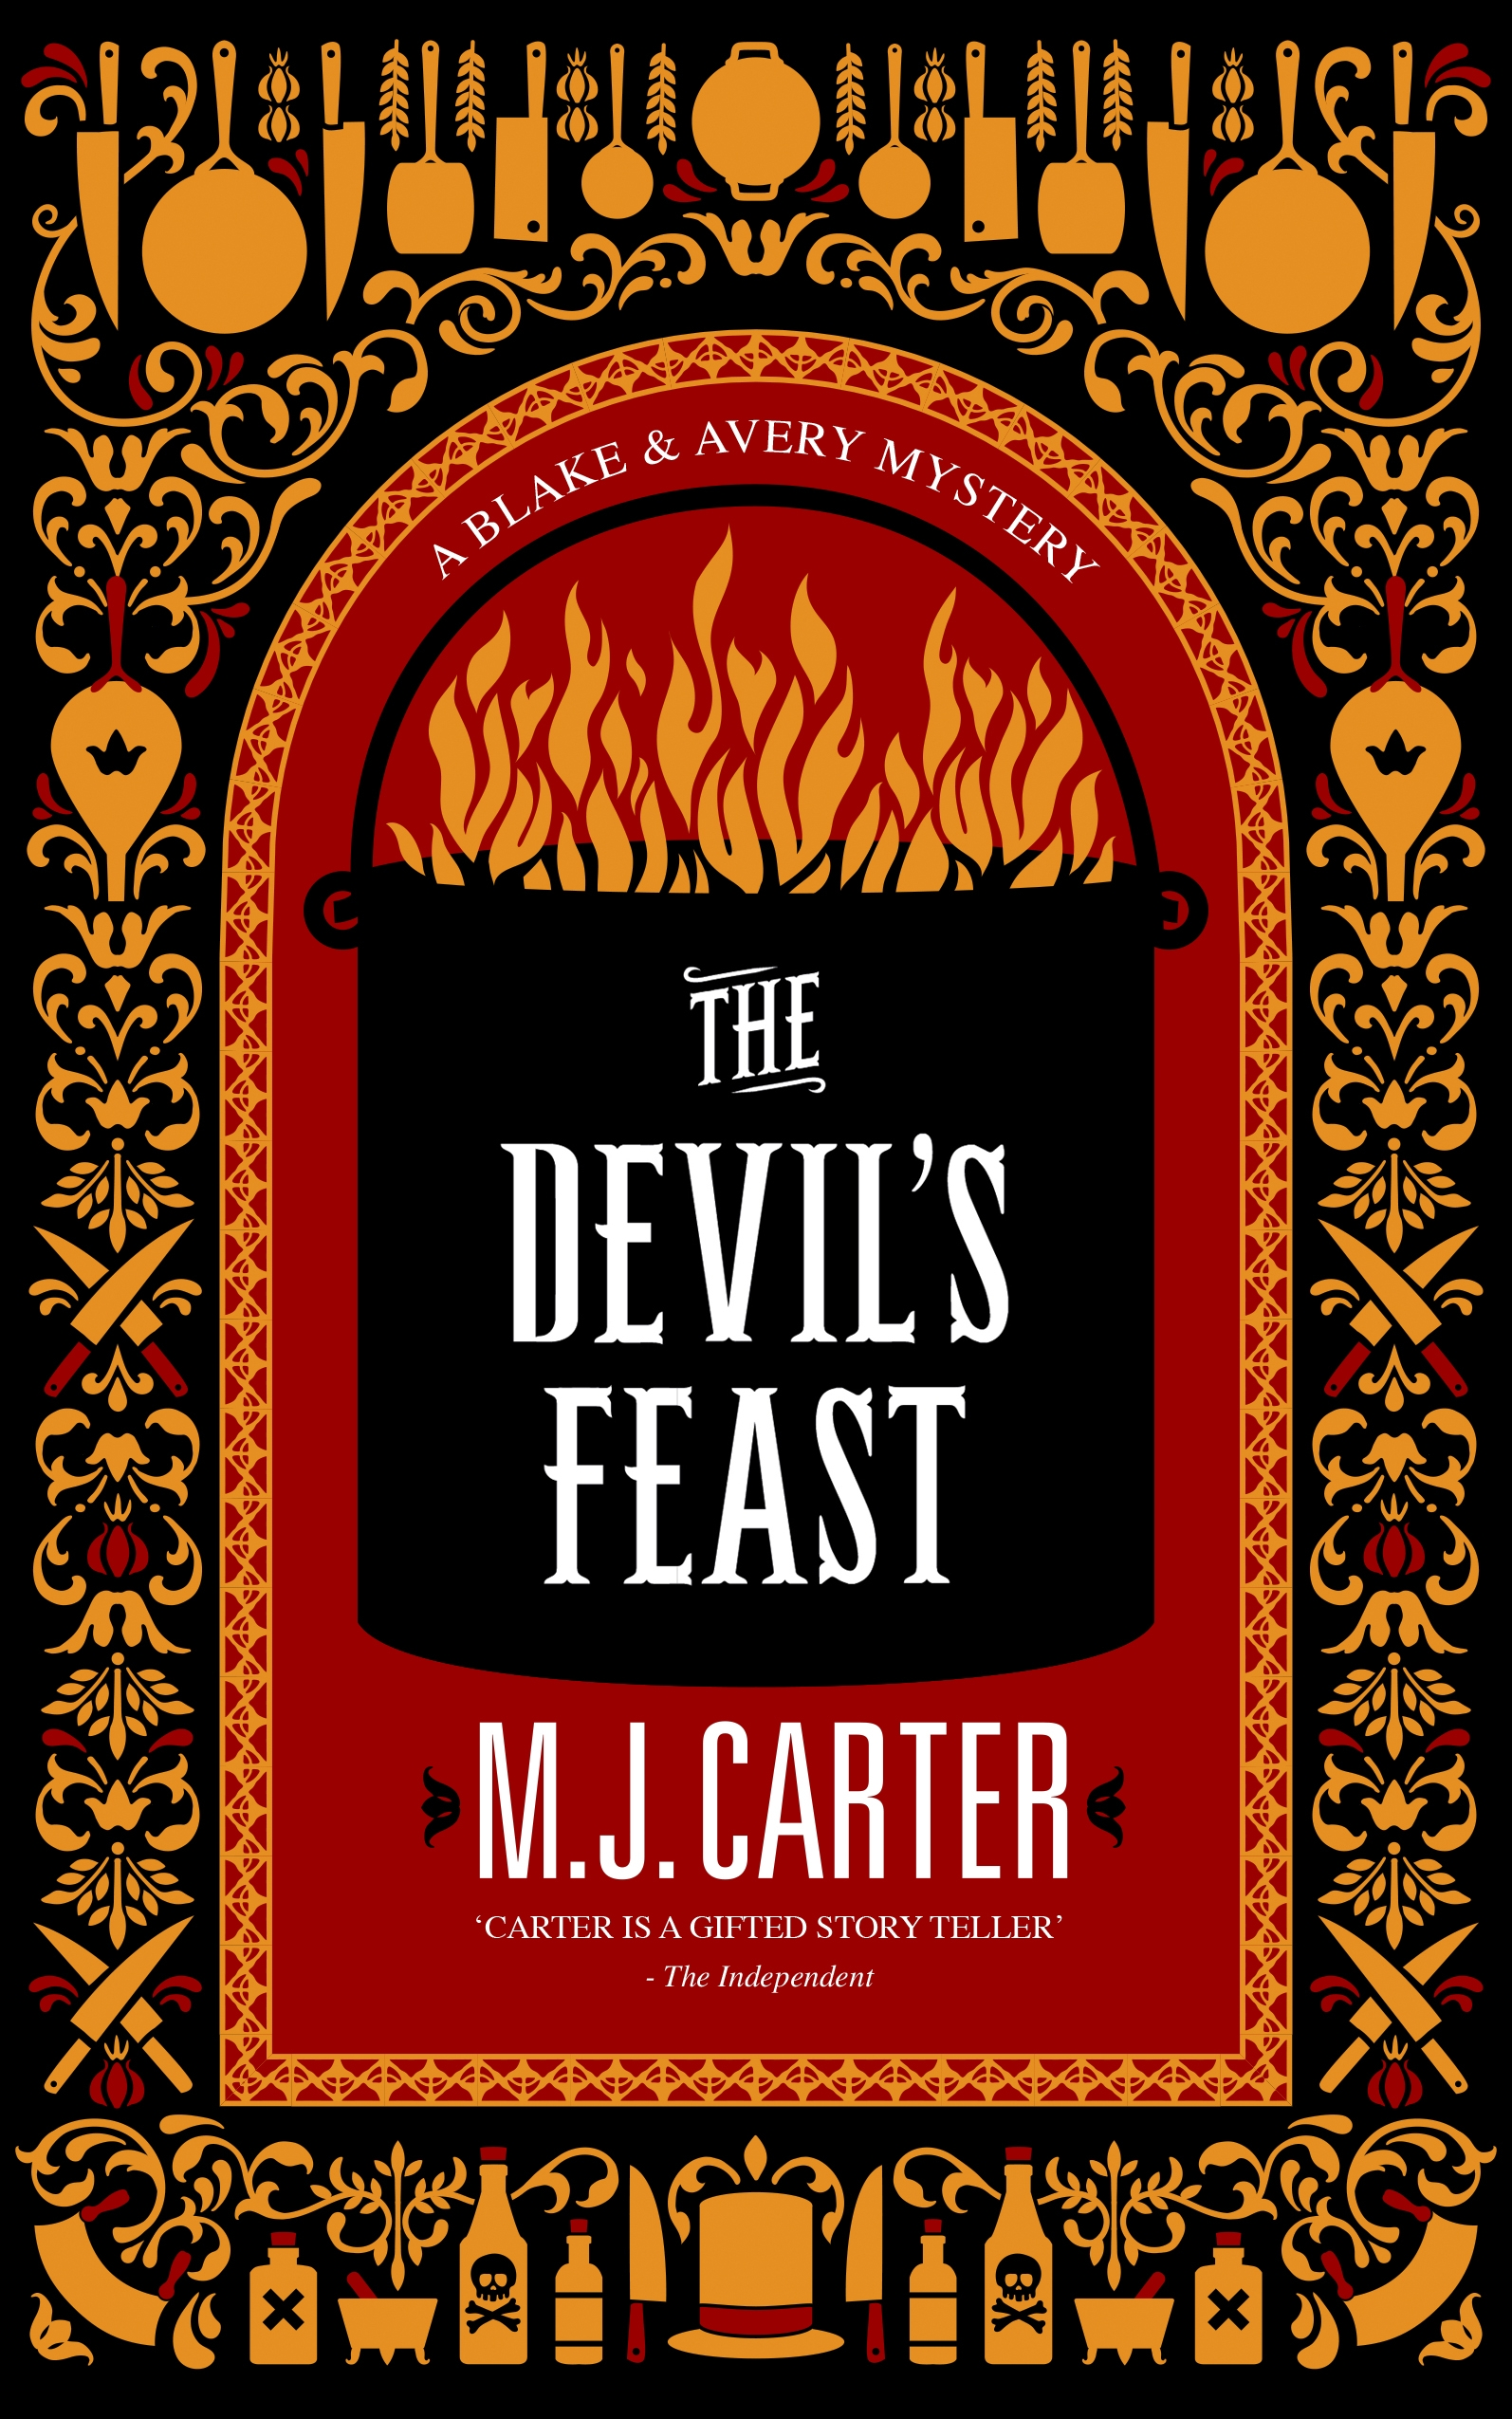 The Devil's Feast (Book Review)